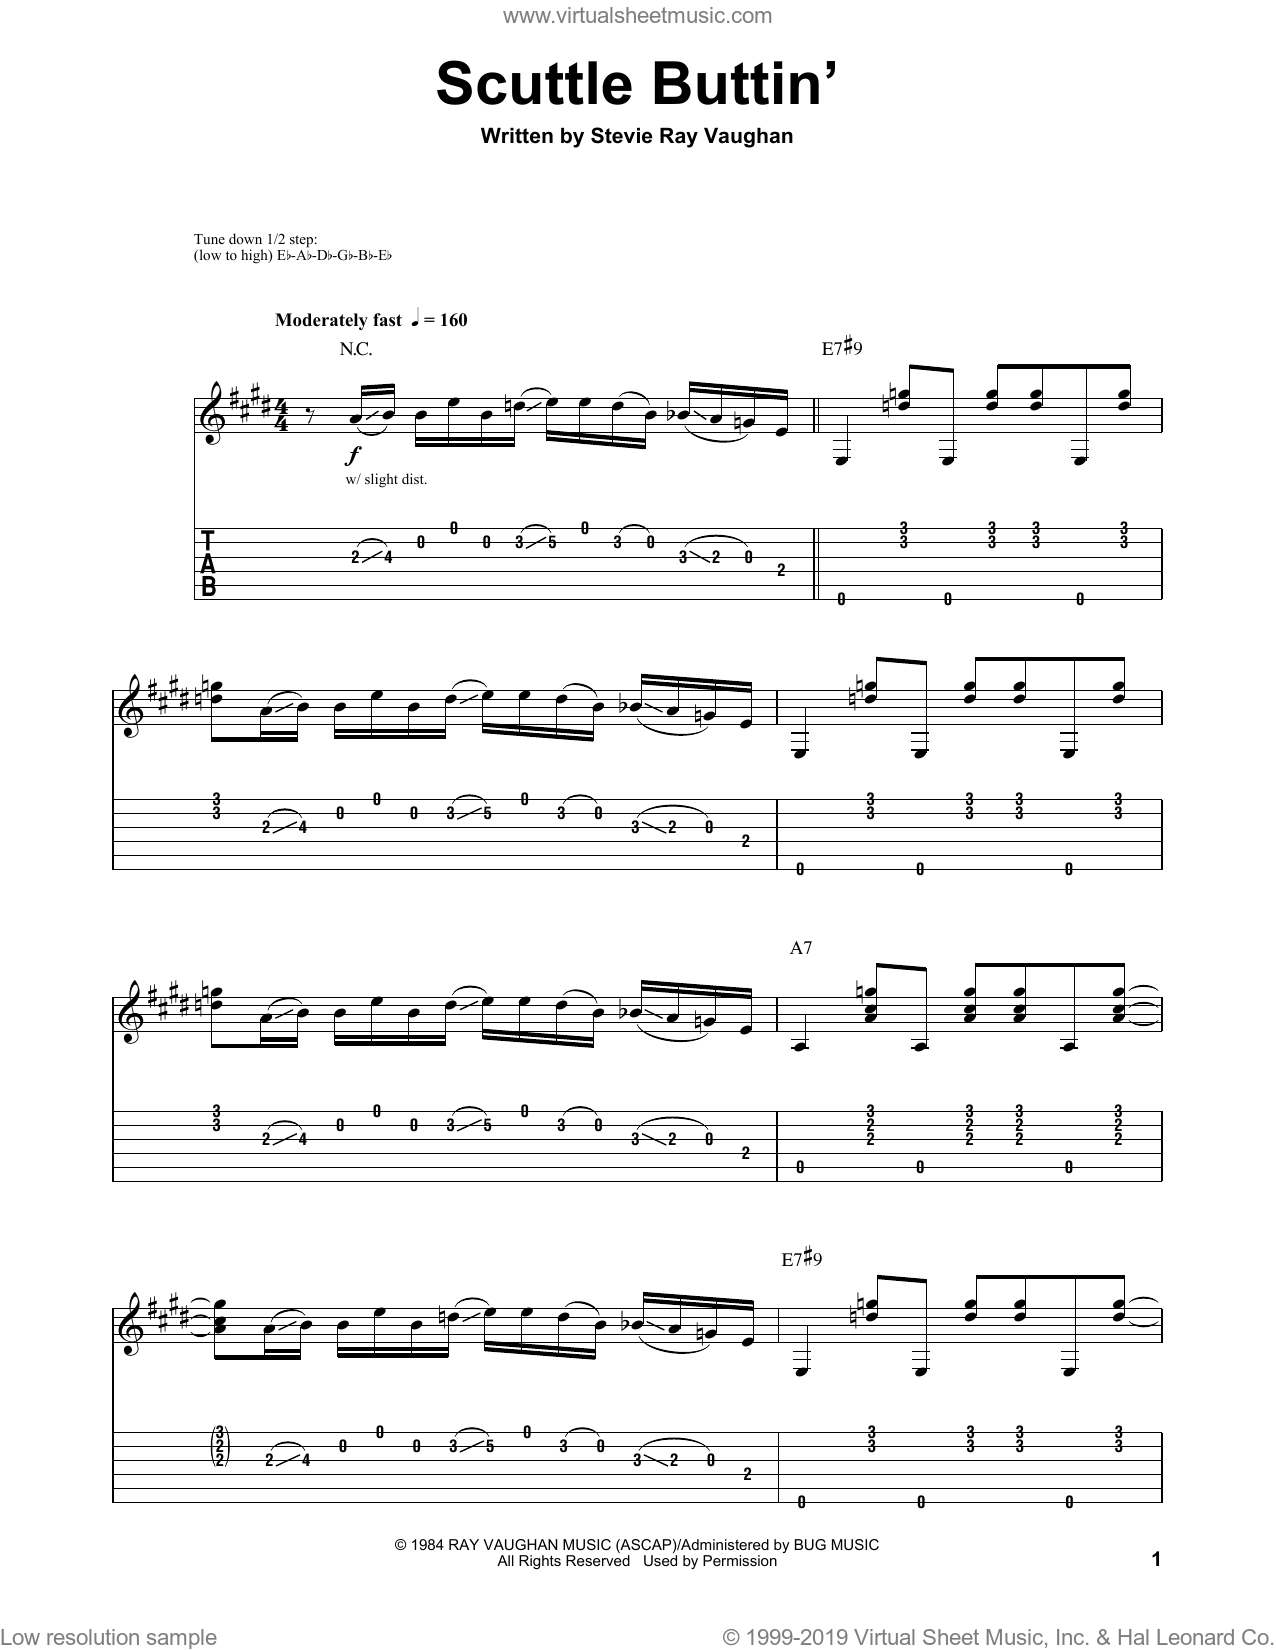 Scuttle Buttin' sheet music for guitar (tablature, play-along) by Stevie Ray Vaughan